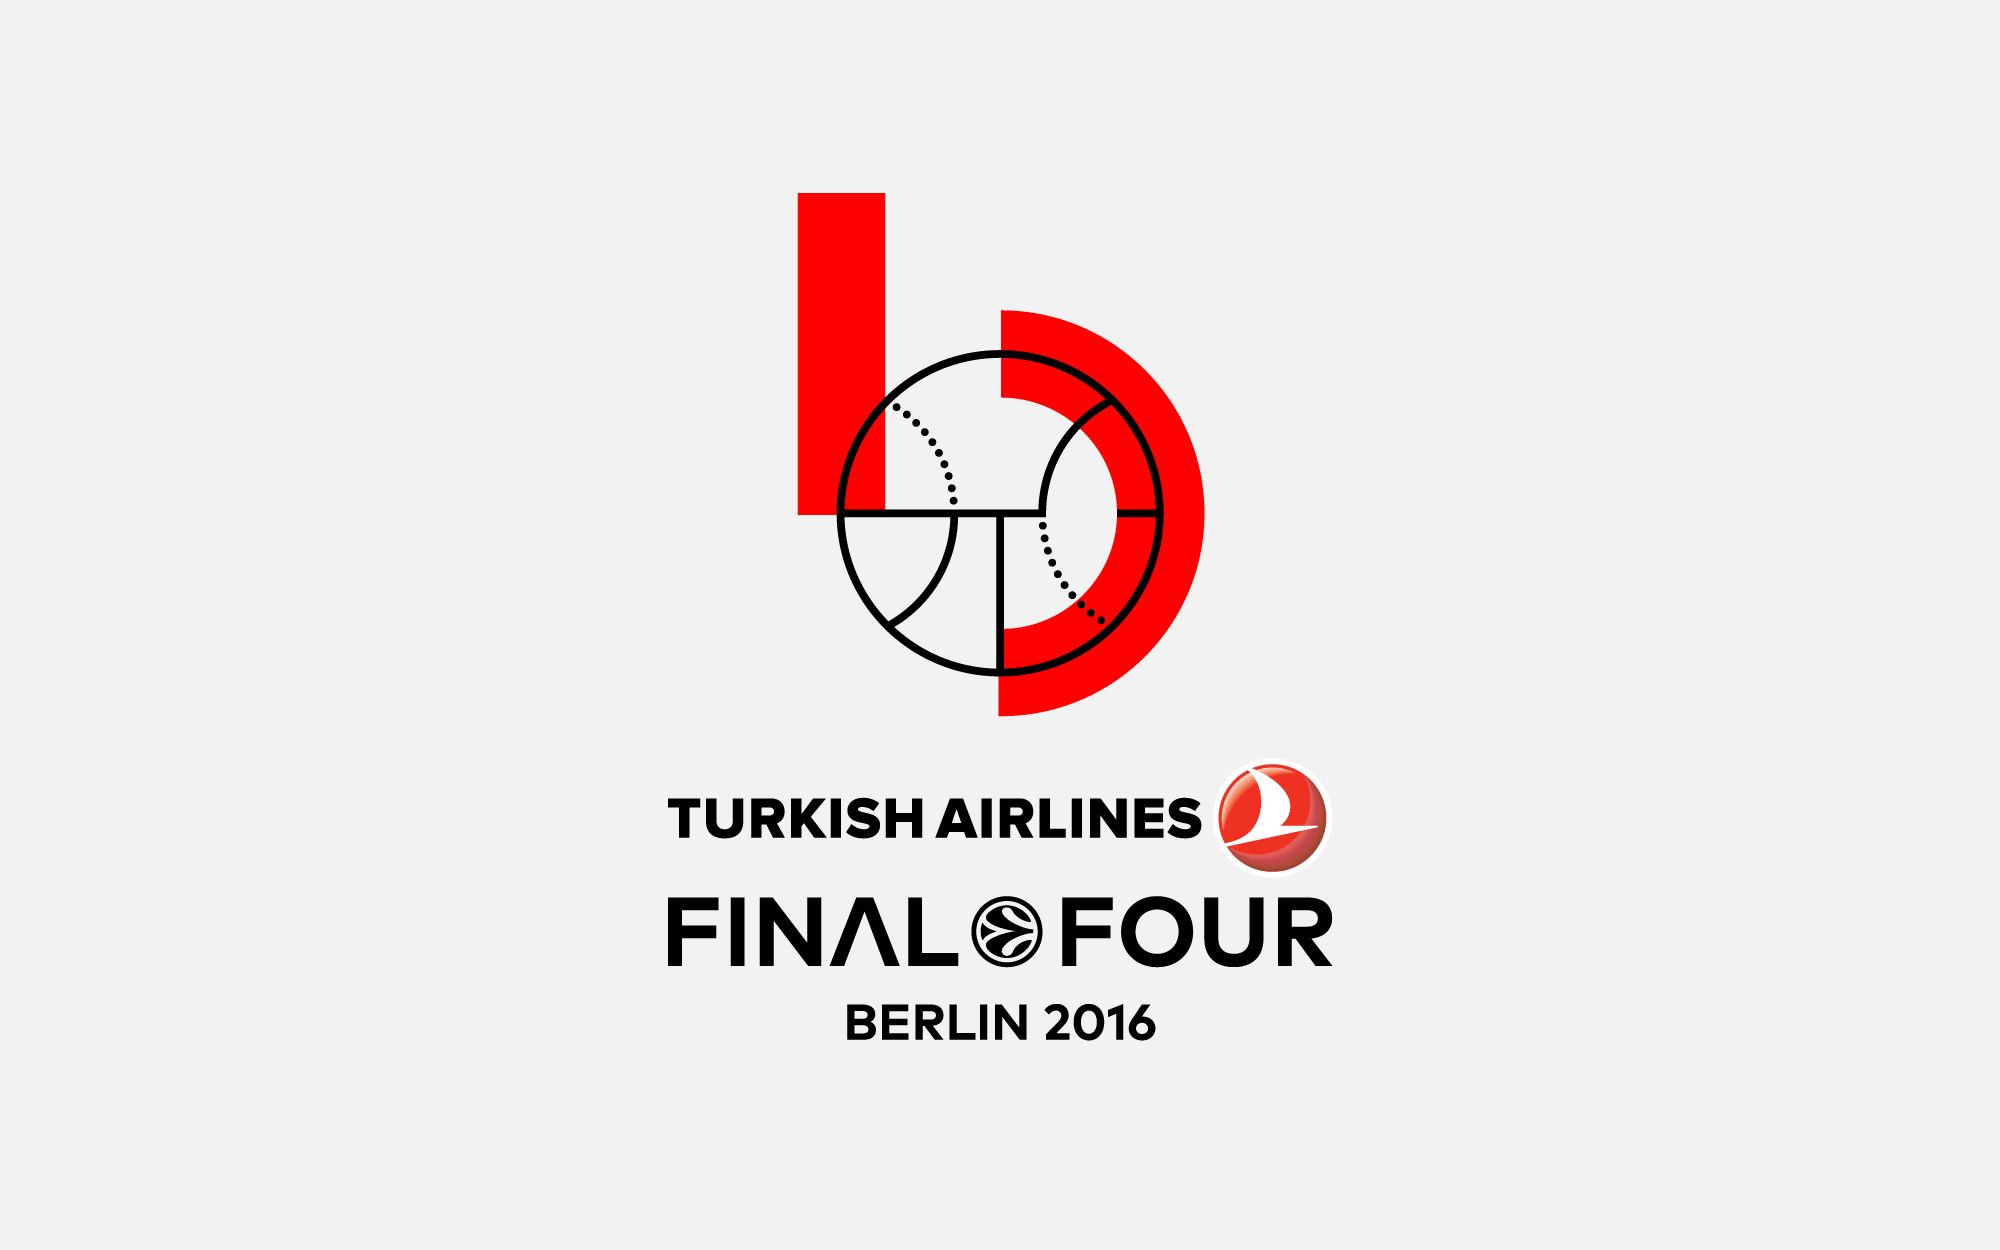 Euroleague Basketball Final Four 2016 Final Four Basketball Finals Design Agency